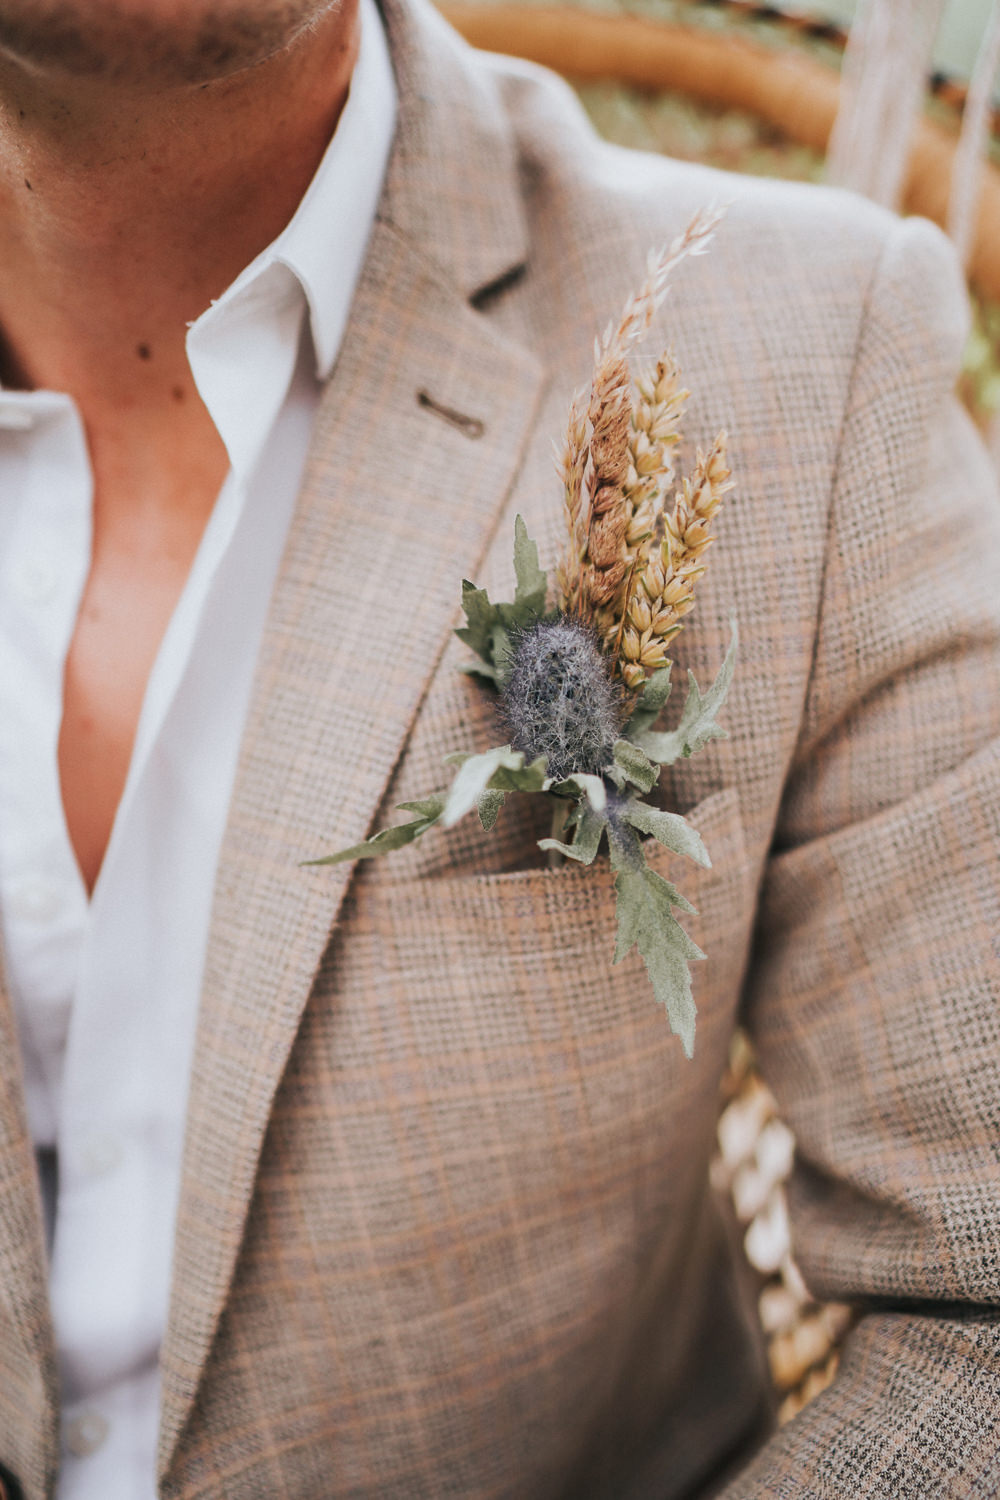 Buttonhole Groom Flowers Wheat Grass Naked Tipi Wedding Ideas Holly Rose Stones